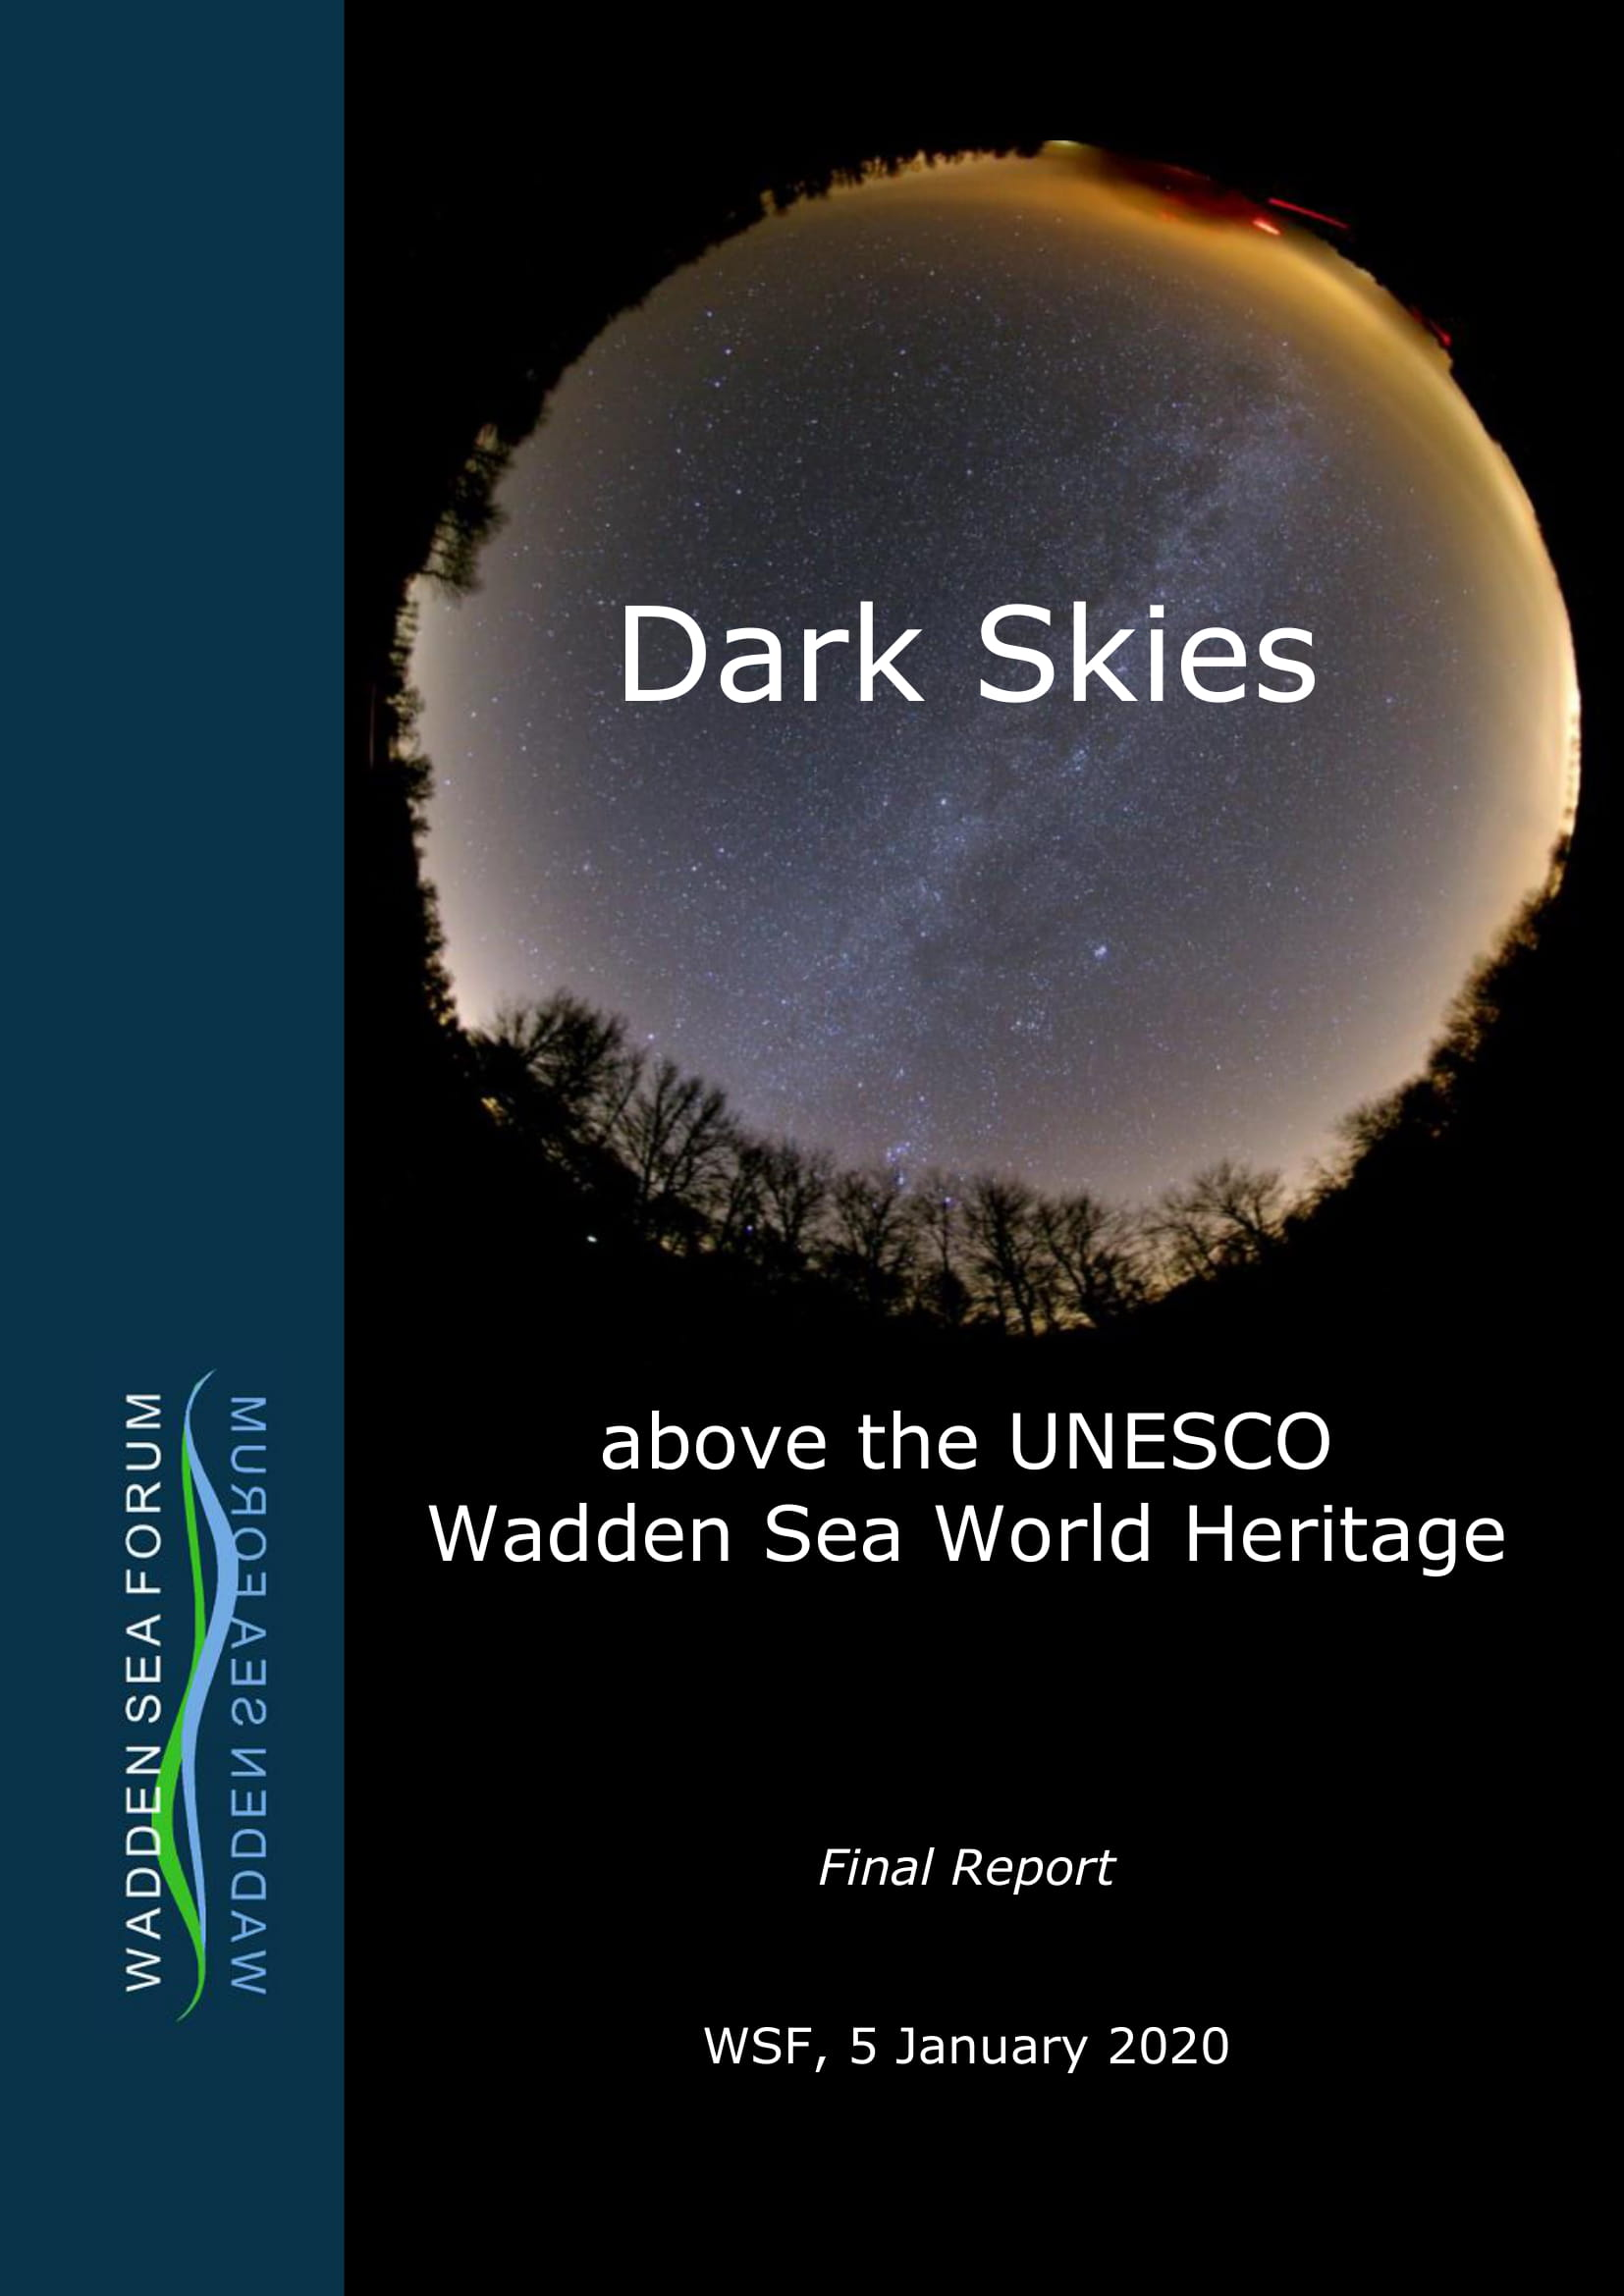 dark sky final report project 2019